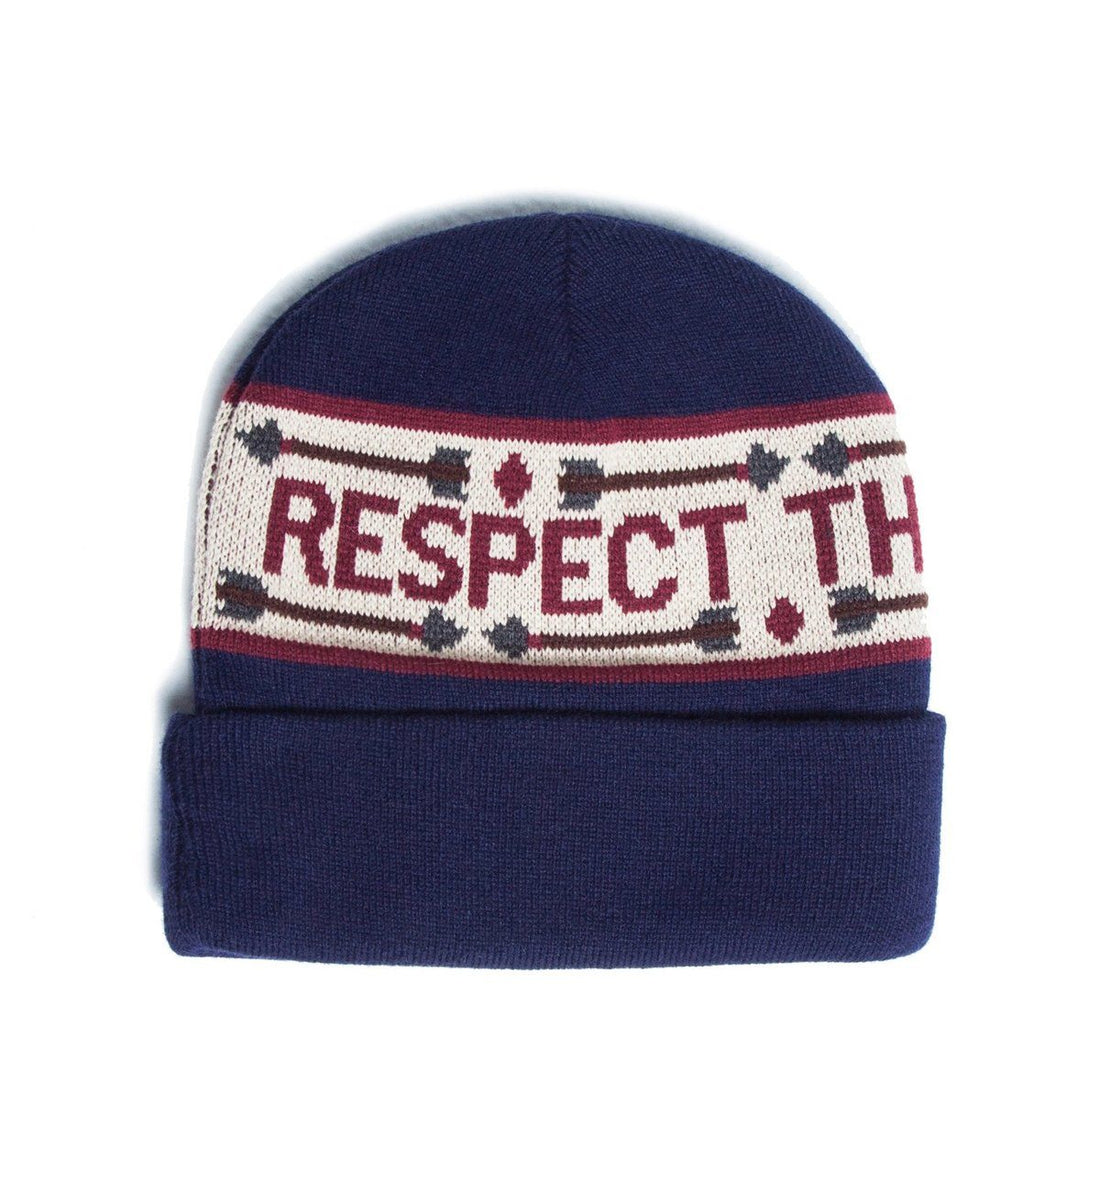 The Ampal Creative Respect the Natives Beanie - Headwear - Iron and Resin